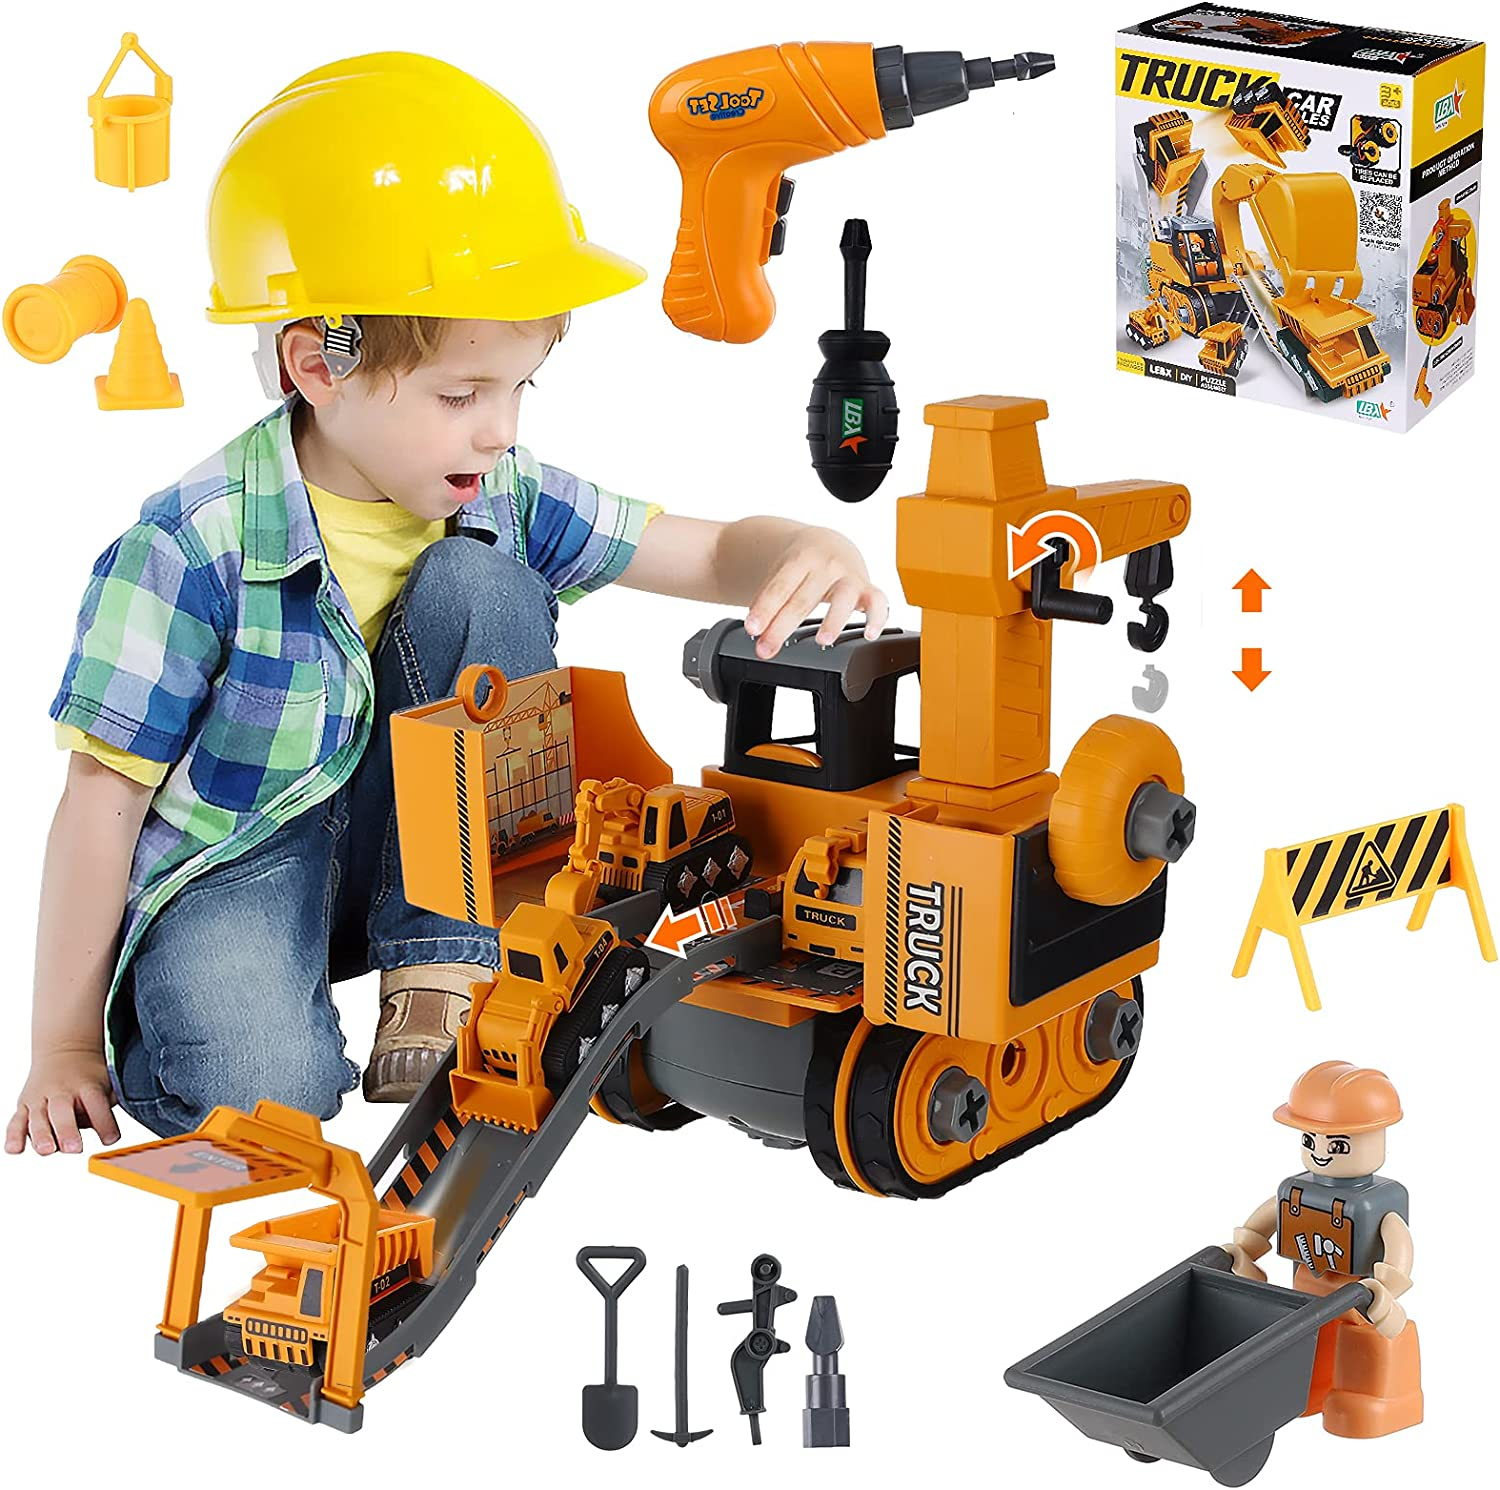 STEM Toy Building Truck Toys Gifts for Age 9 3 8 Spring new work one NEW before selling ☆ after another 4 6 7 5 Year